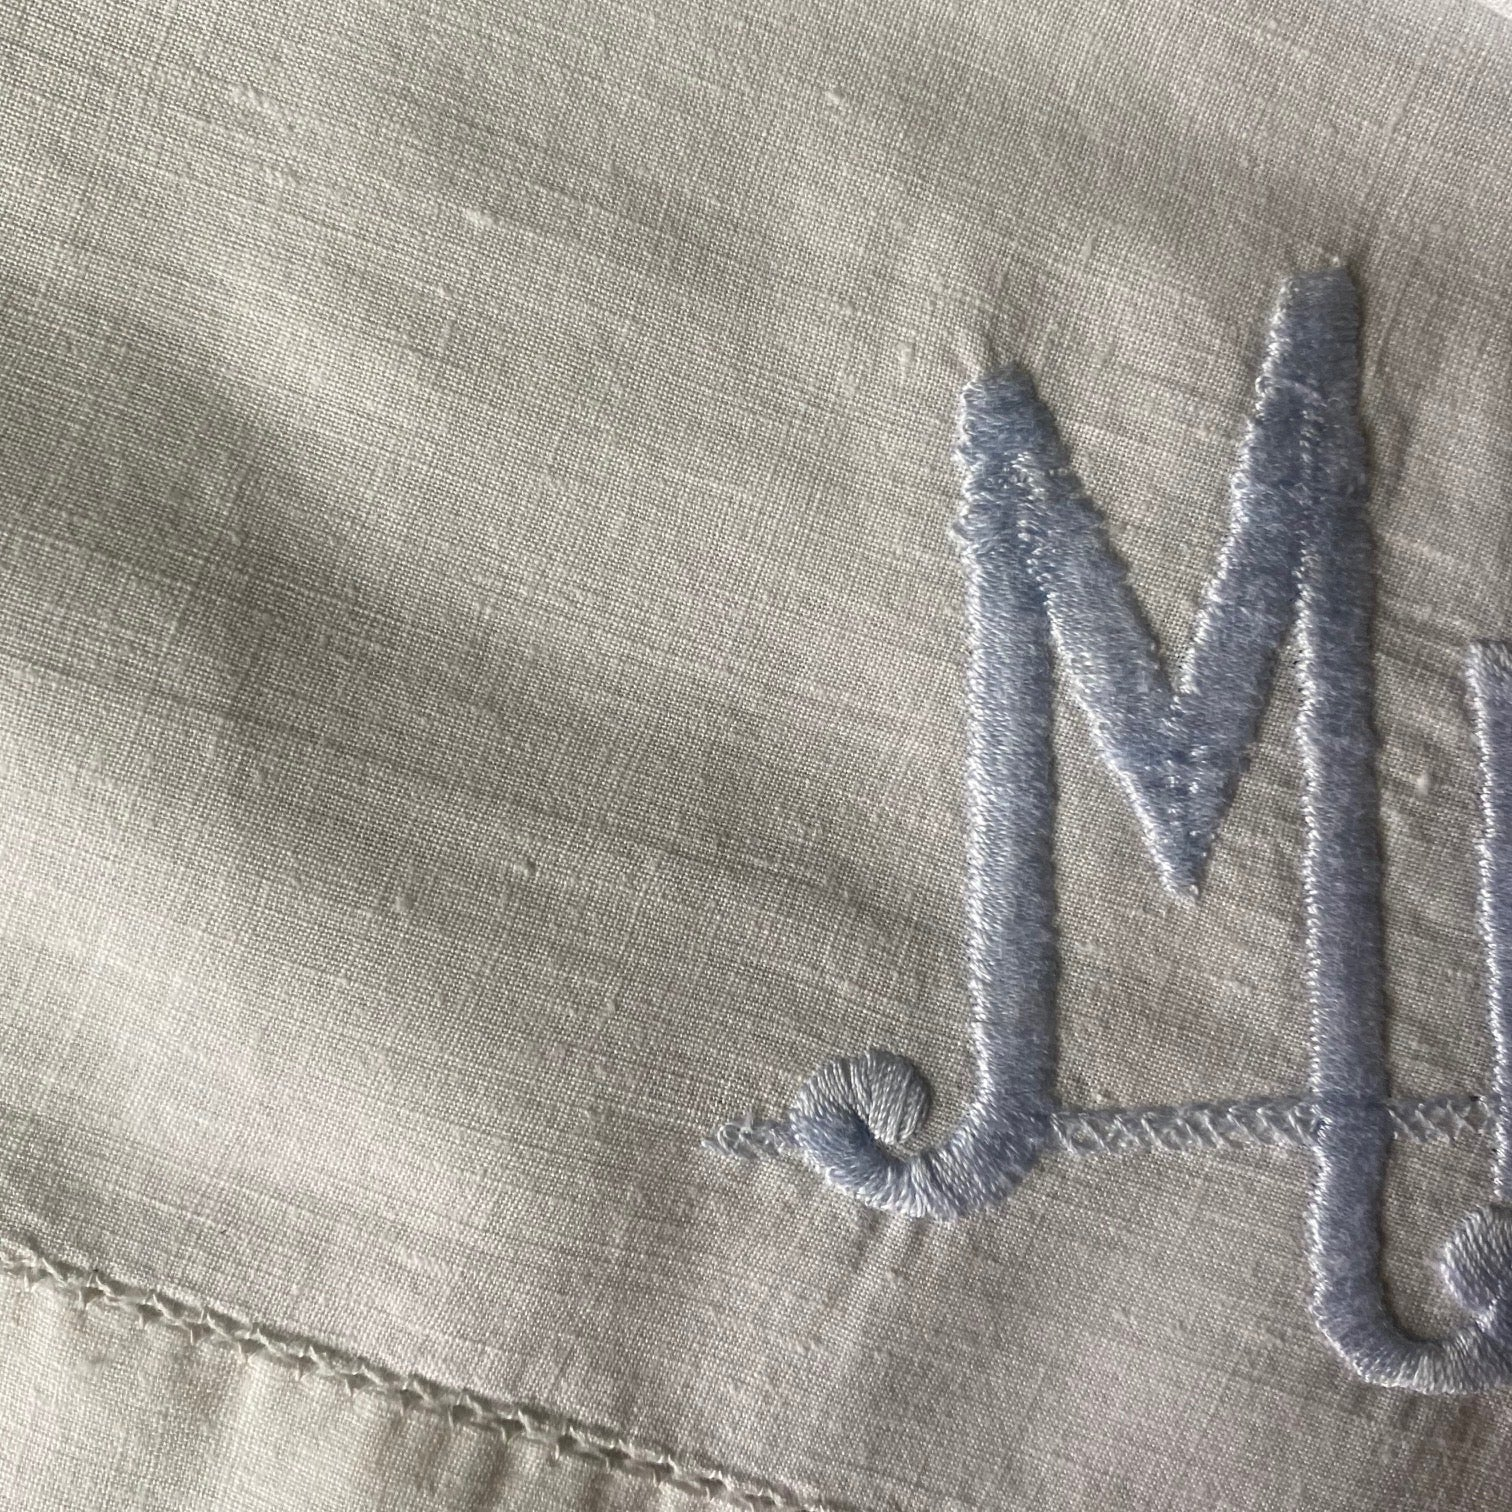 Vintage Mr & Mrs Embroidered Pillowcases - Pair of 2